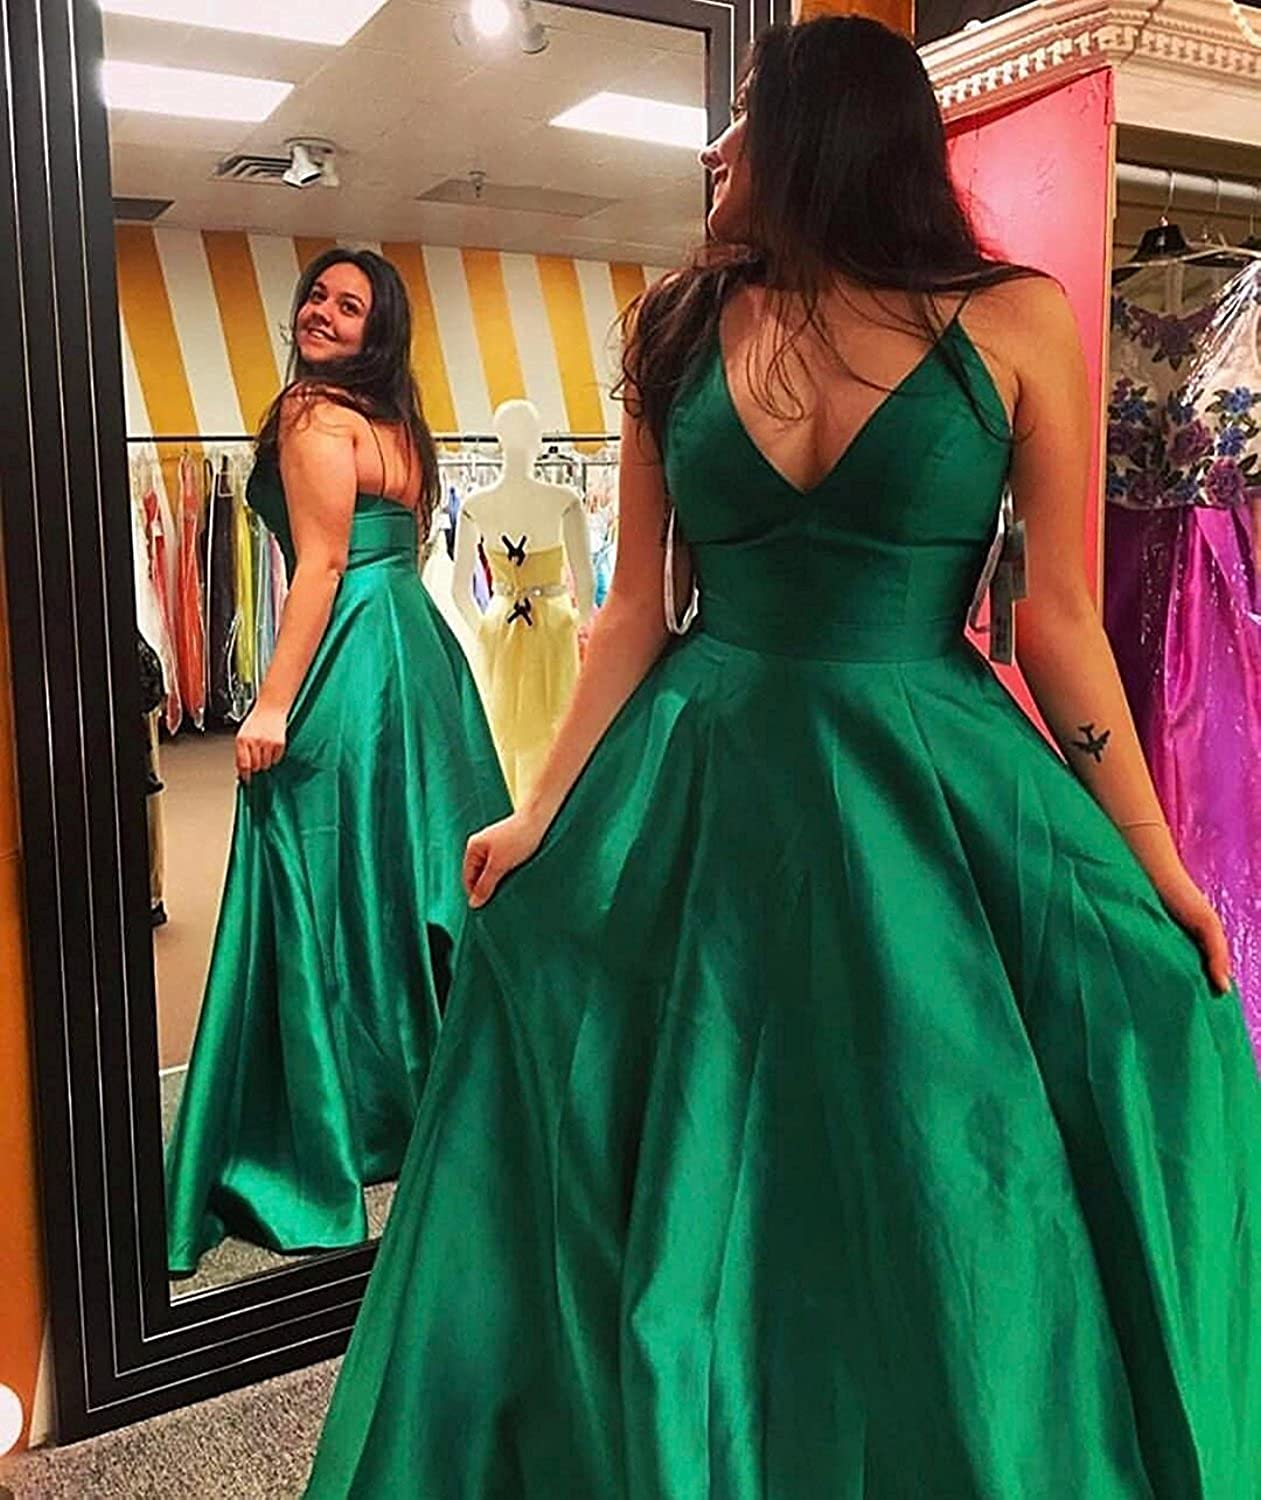 a5668af920 Little Star Women s Long Satin Prom Dresses 2019 V Neck Evening Gown A Line  at Amazon Women s Clothing store